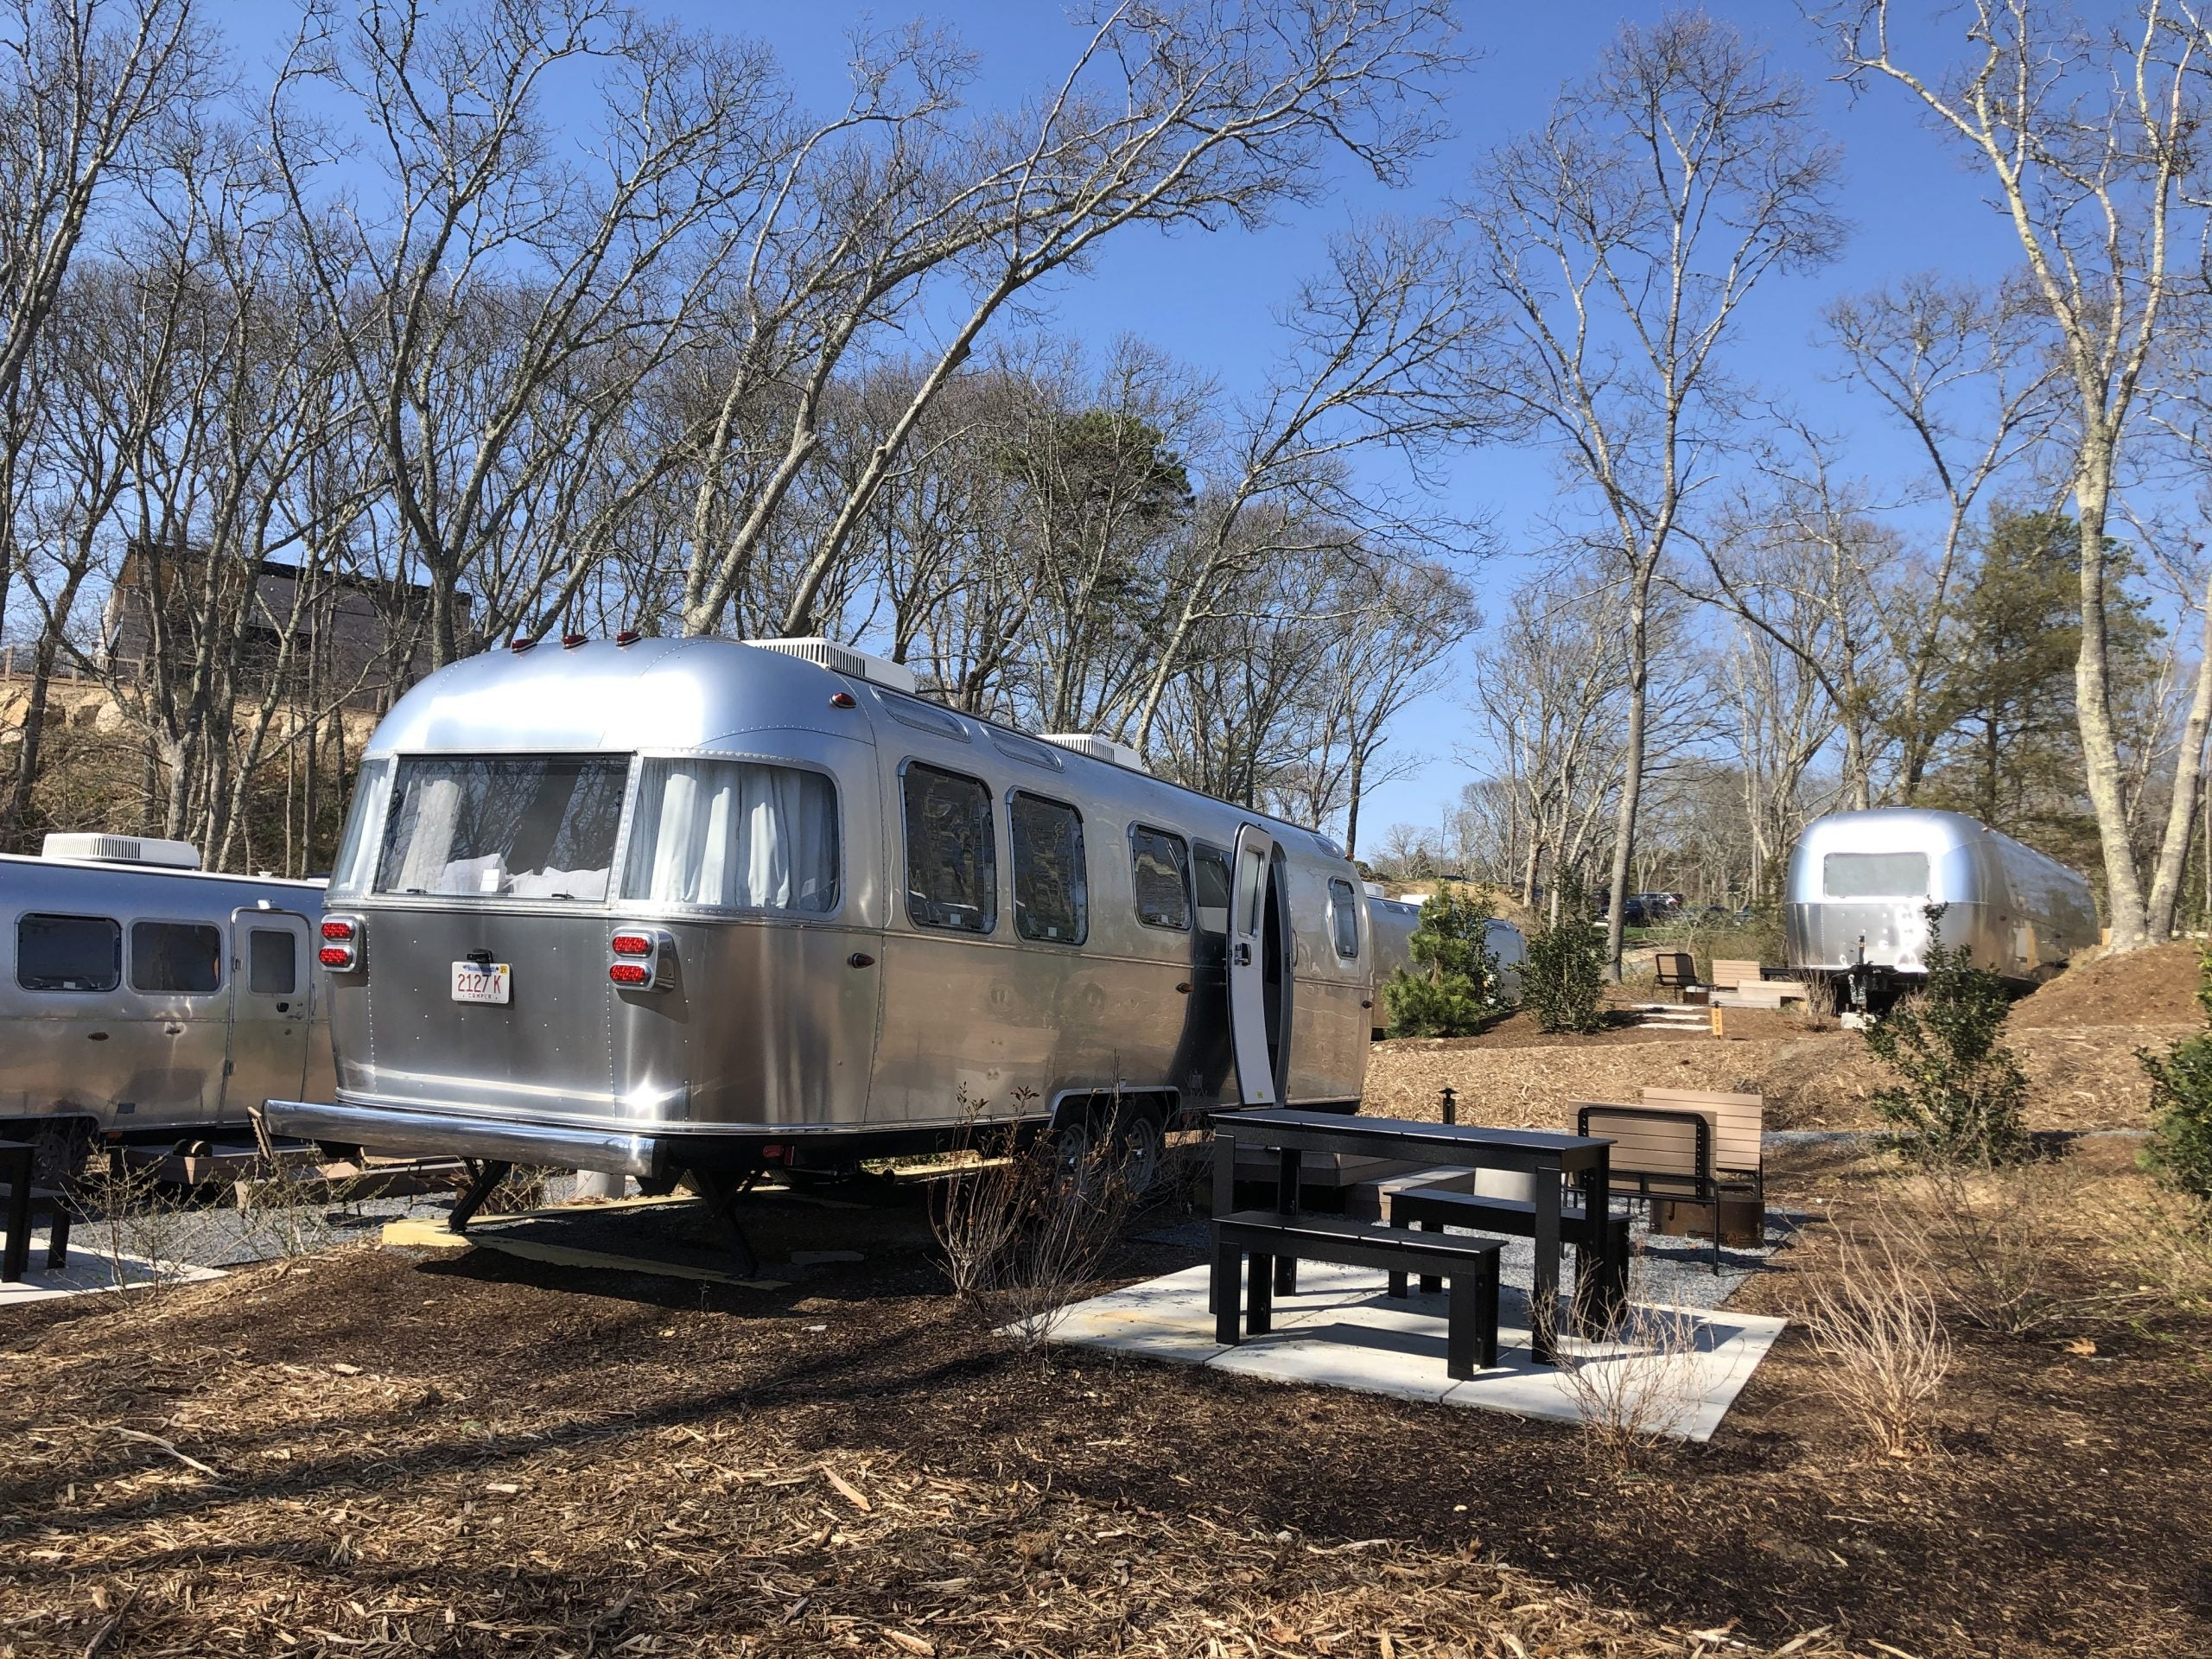 We stayed at an Airstream campground in Cape Cod and we're never going home - The Points Guy